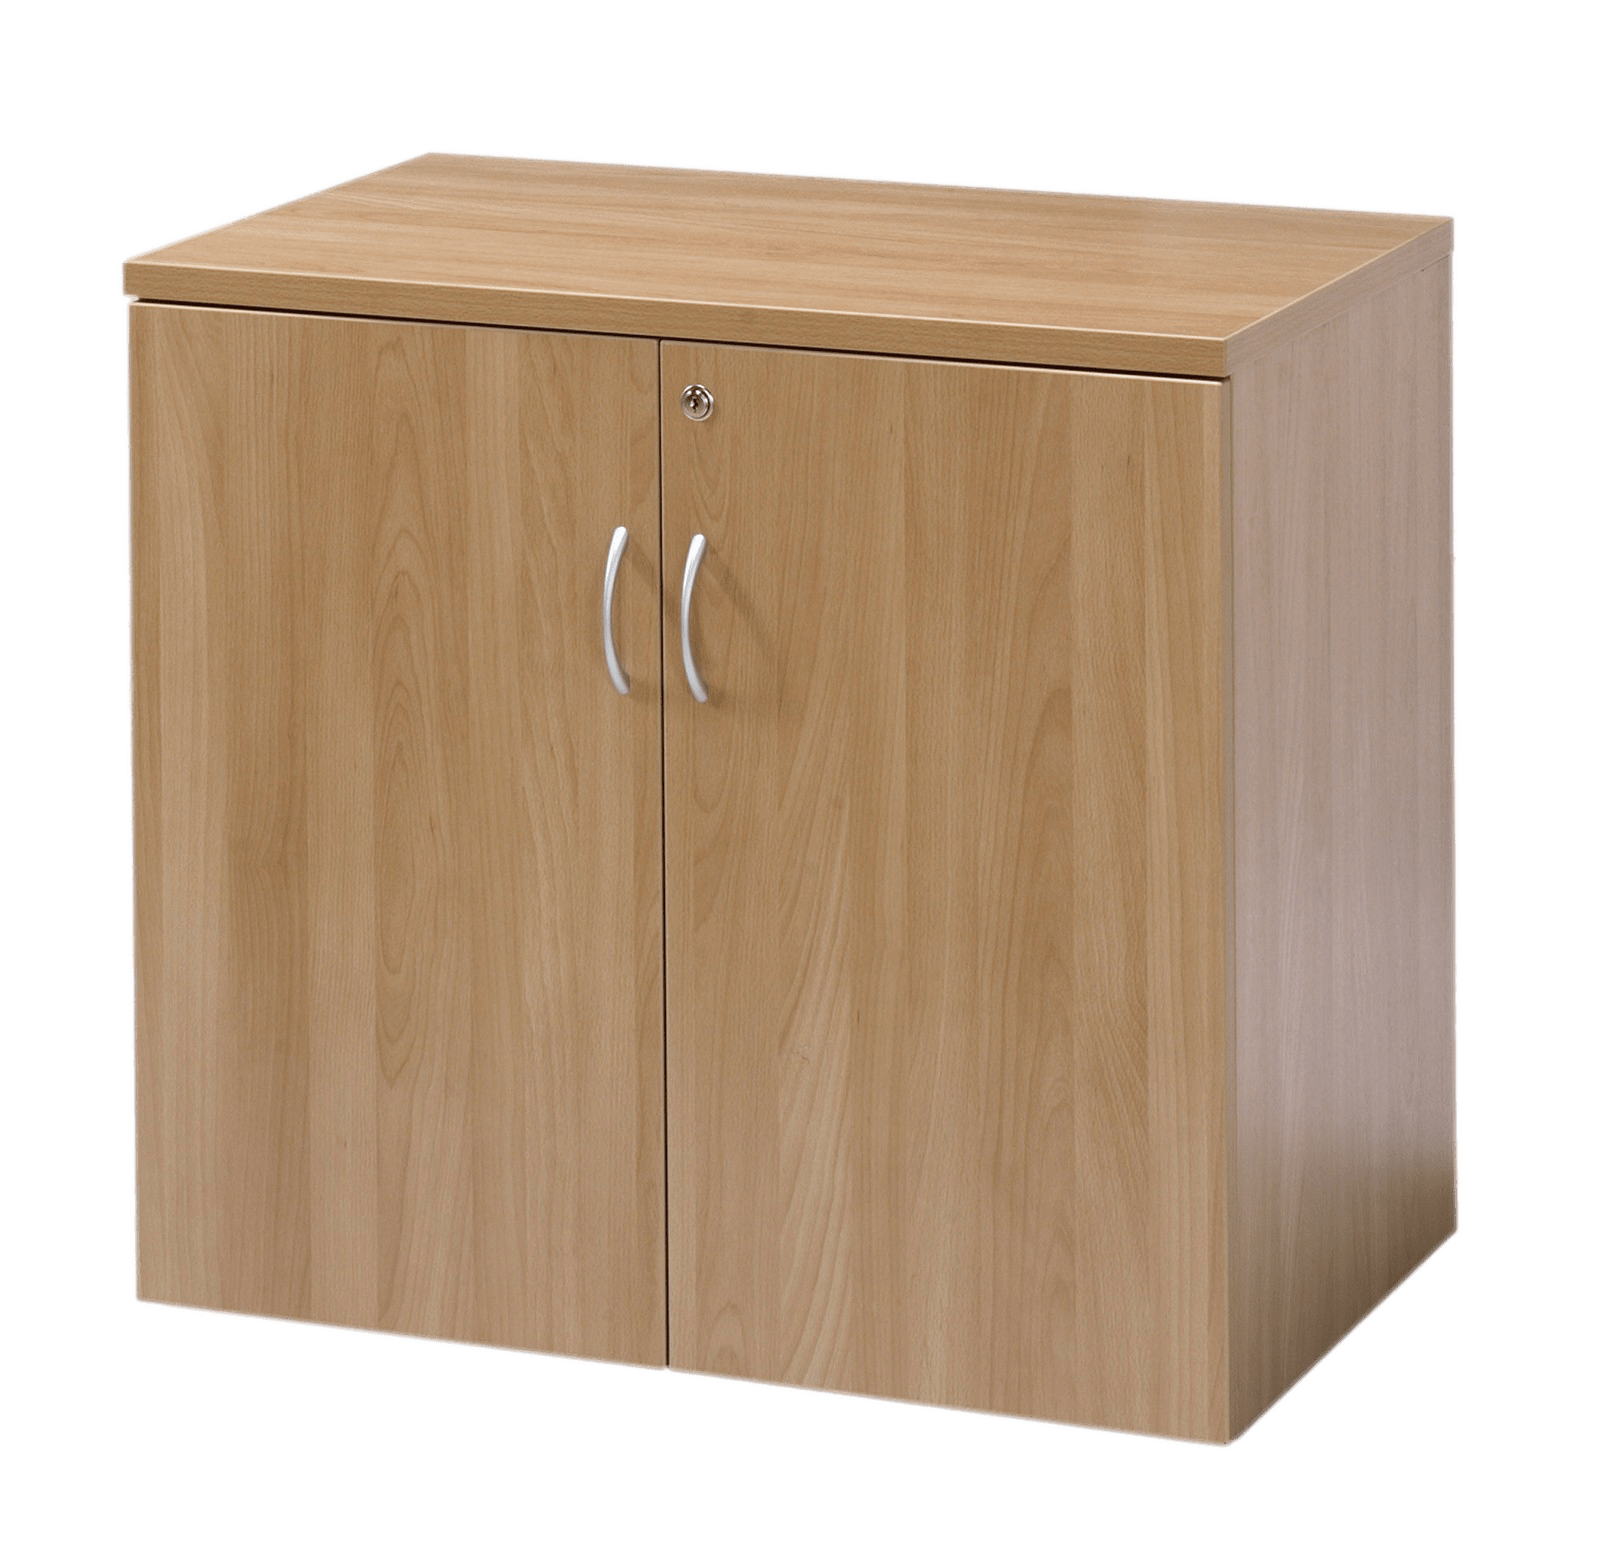 Wooden Office Cupboard transparent PNG - StickPNG